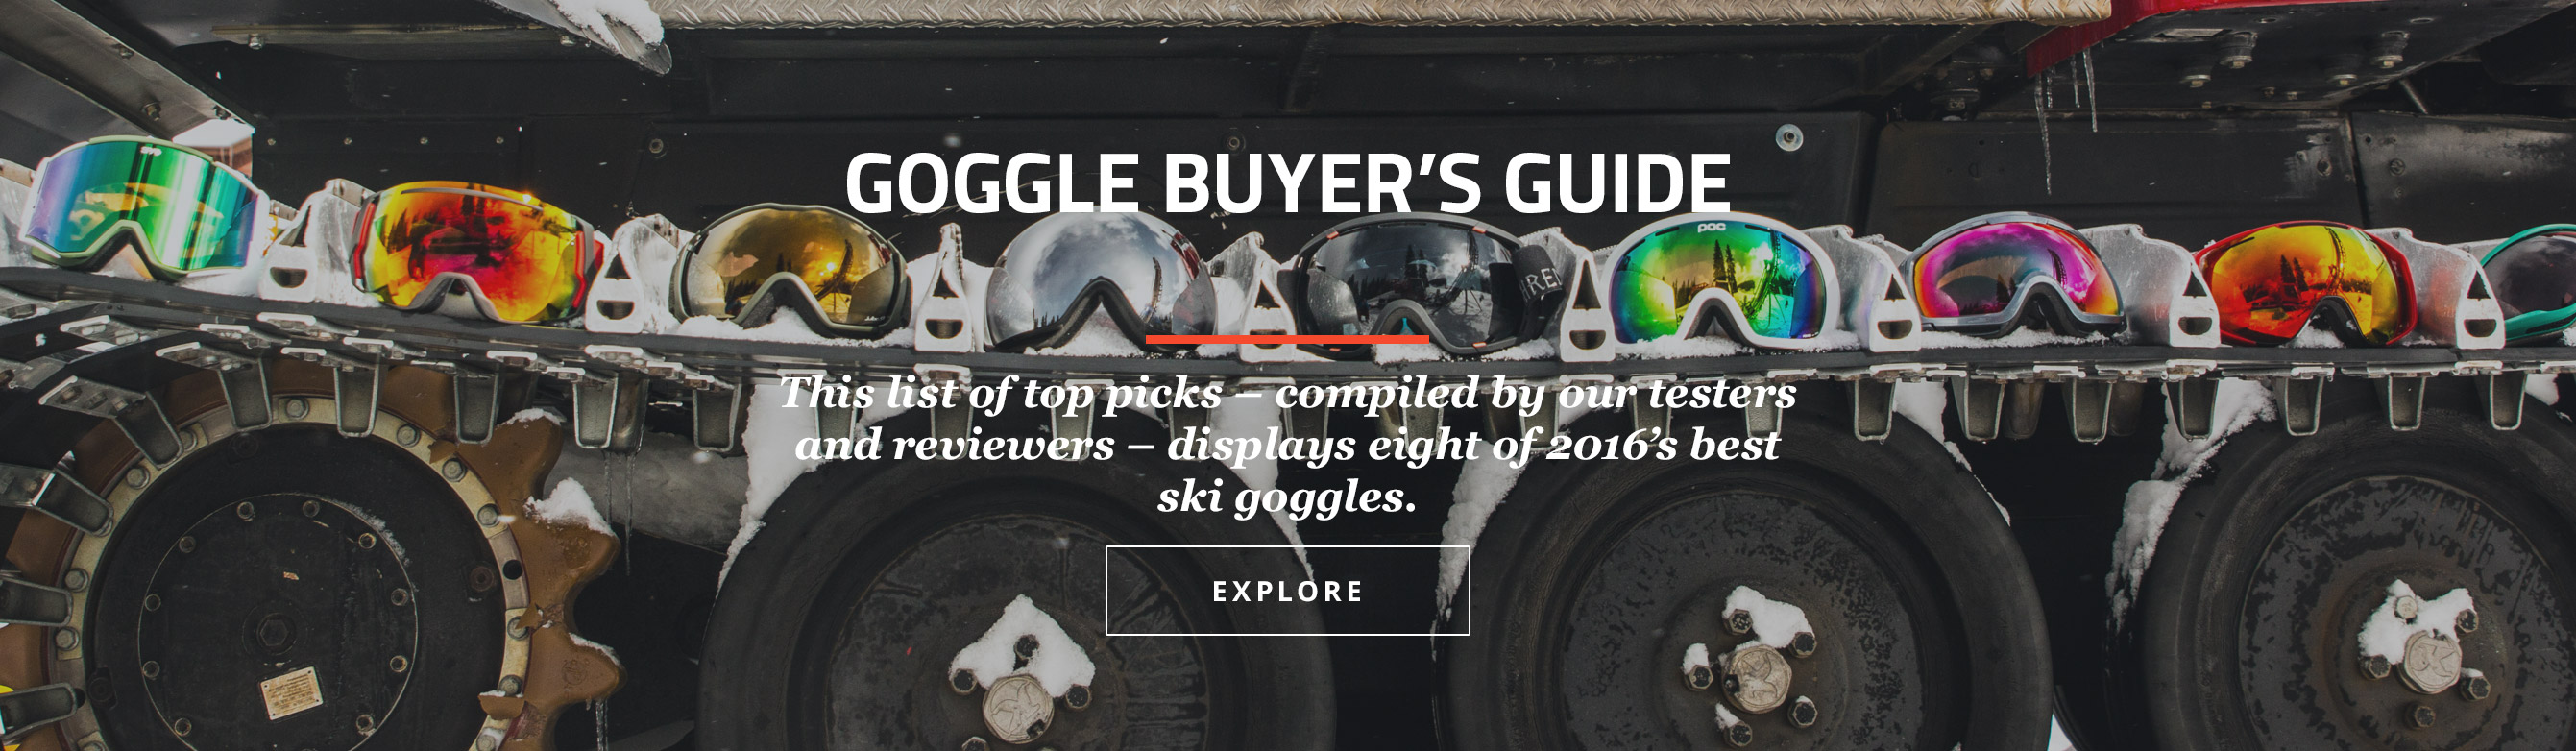 Goggle Buyer's Guide